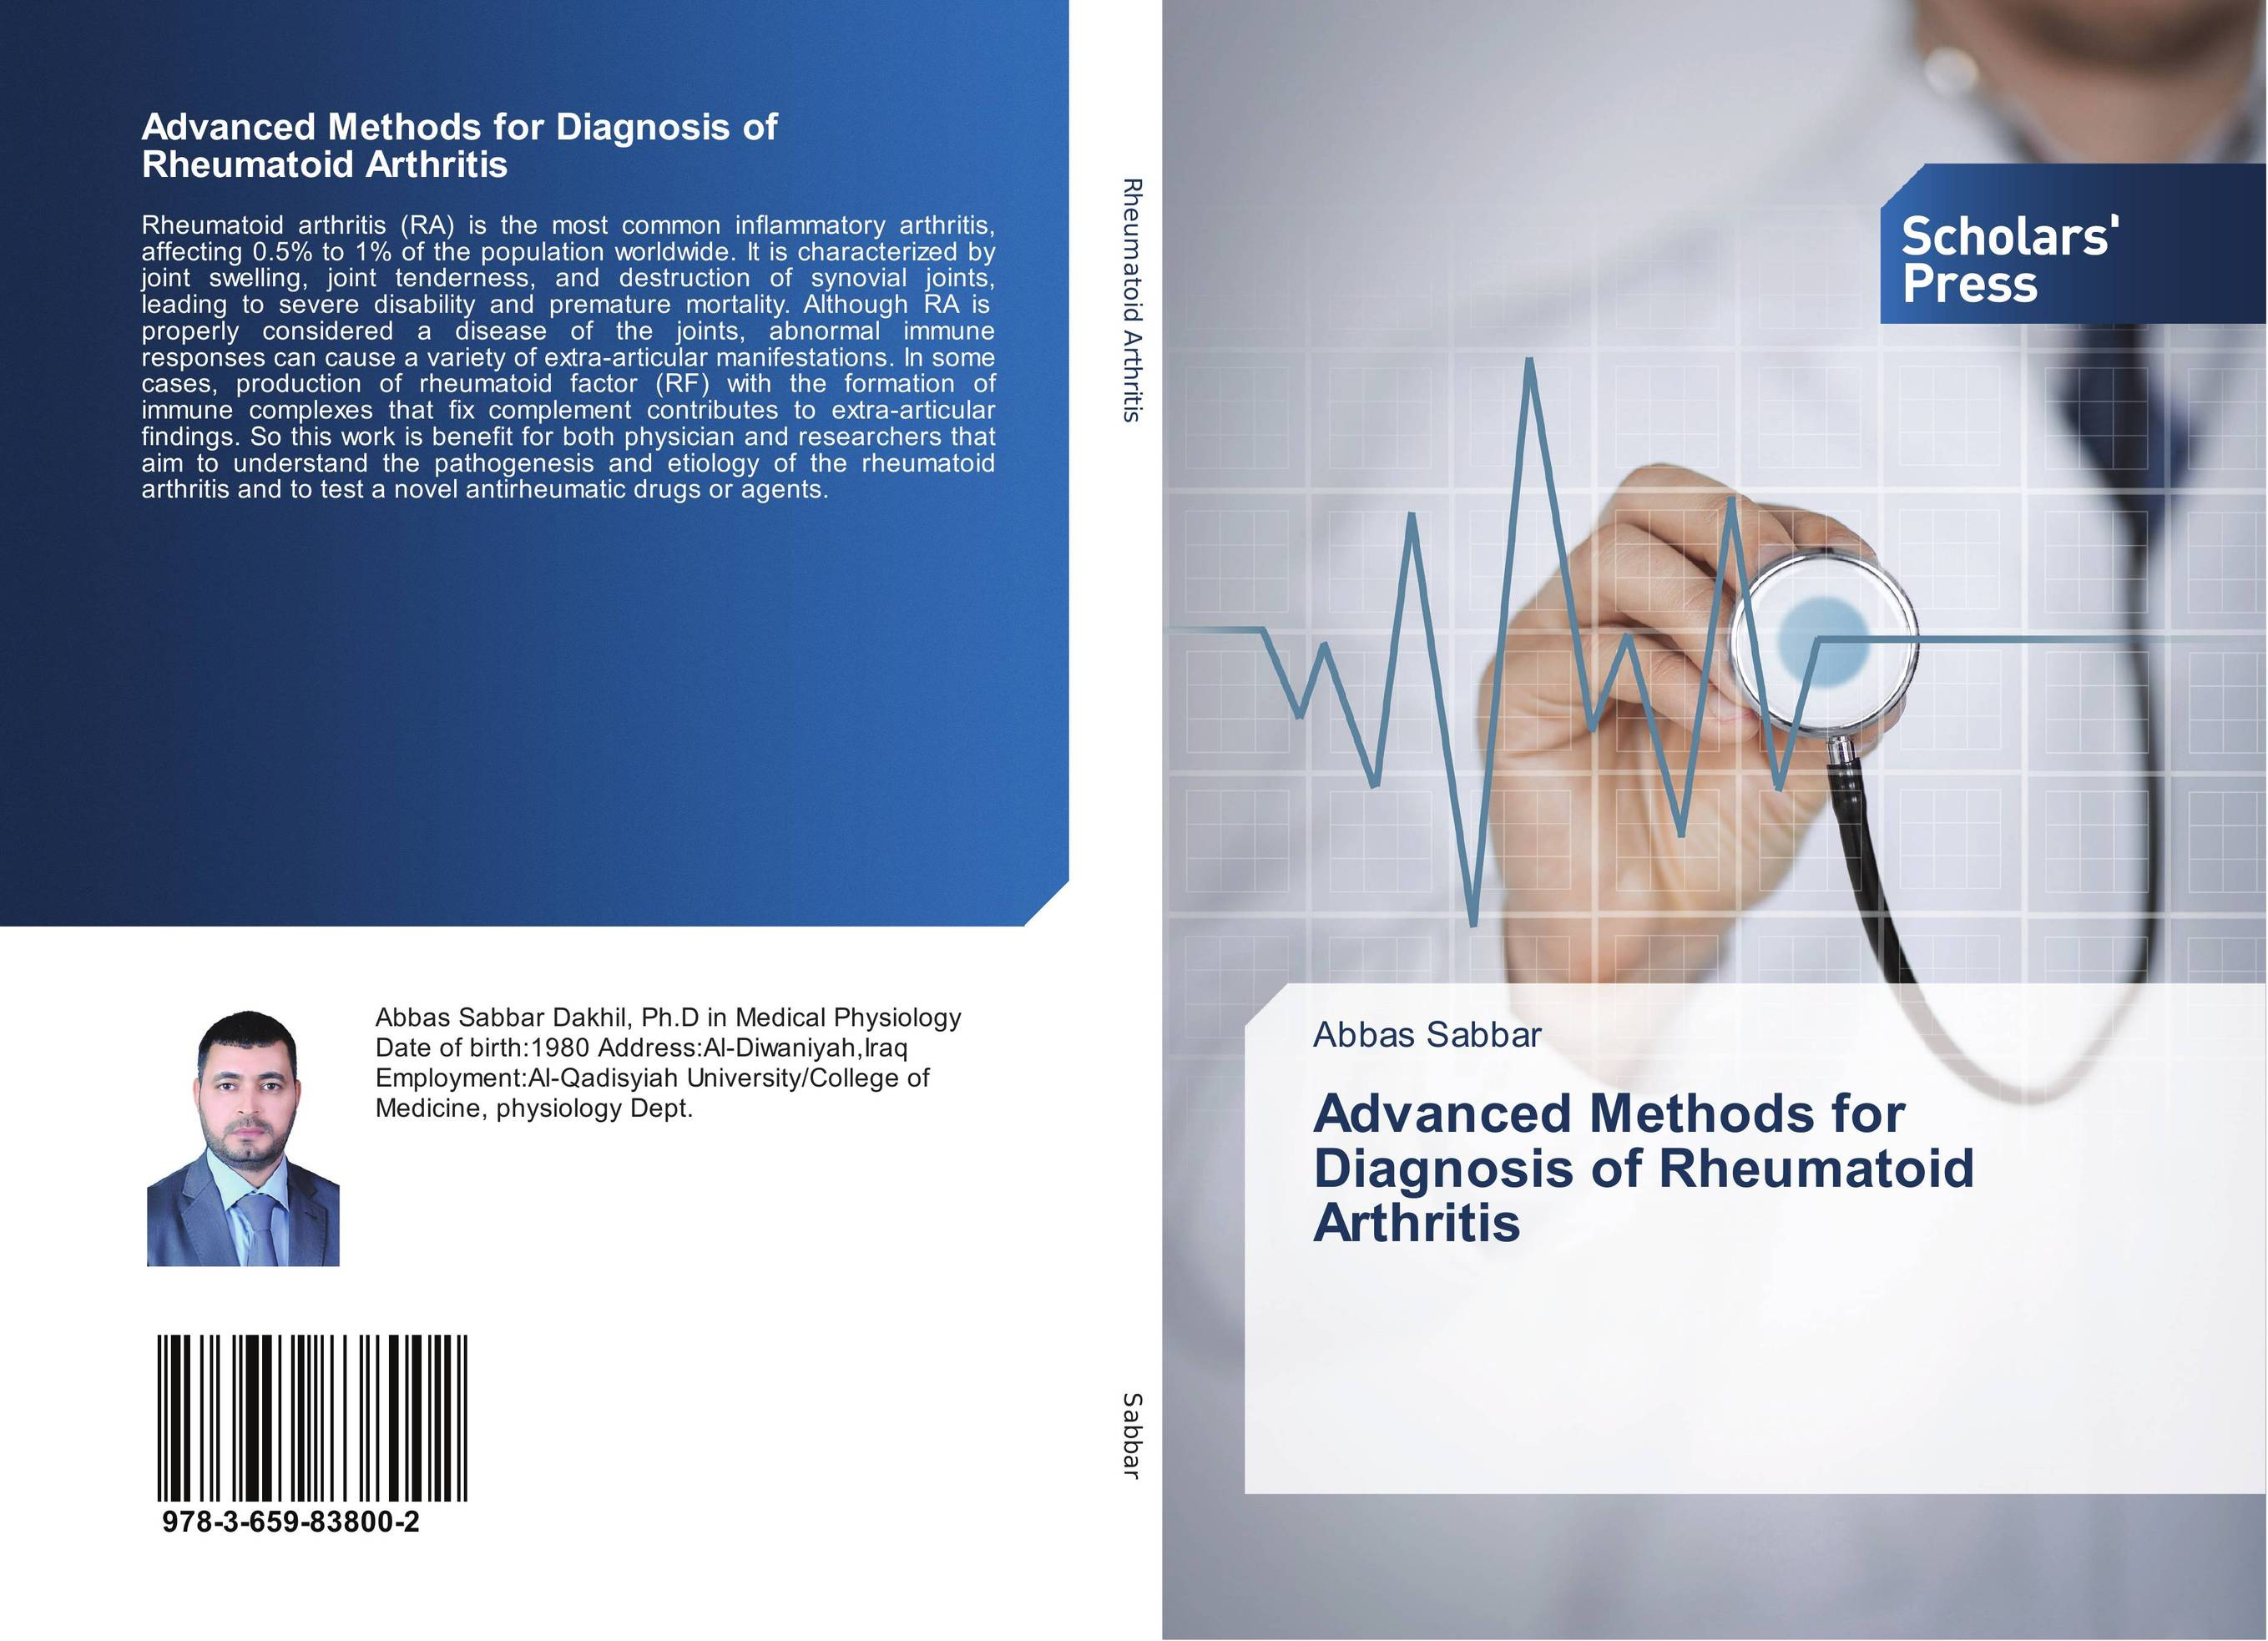 Advanced Methods for Diagnosis of Rheumatoid Arthritis new techniques for early diagnosis of rheumatoid arthritis